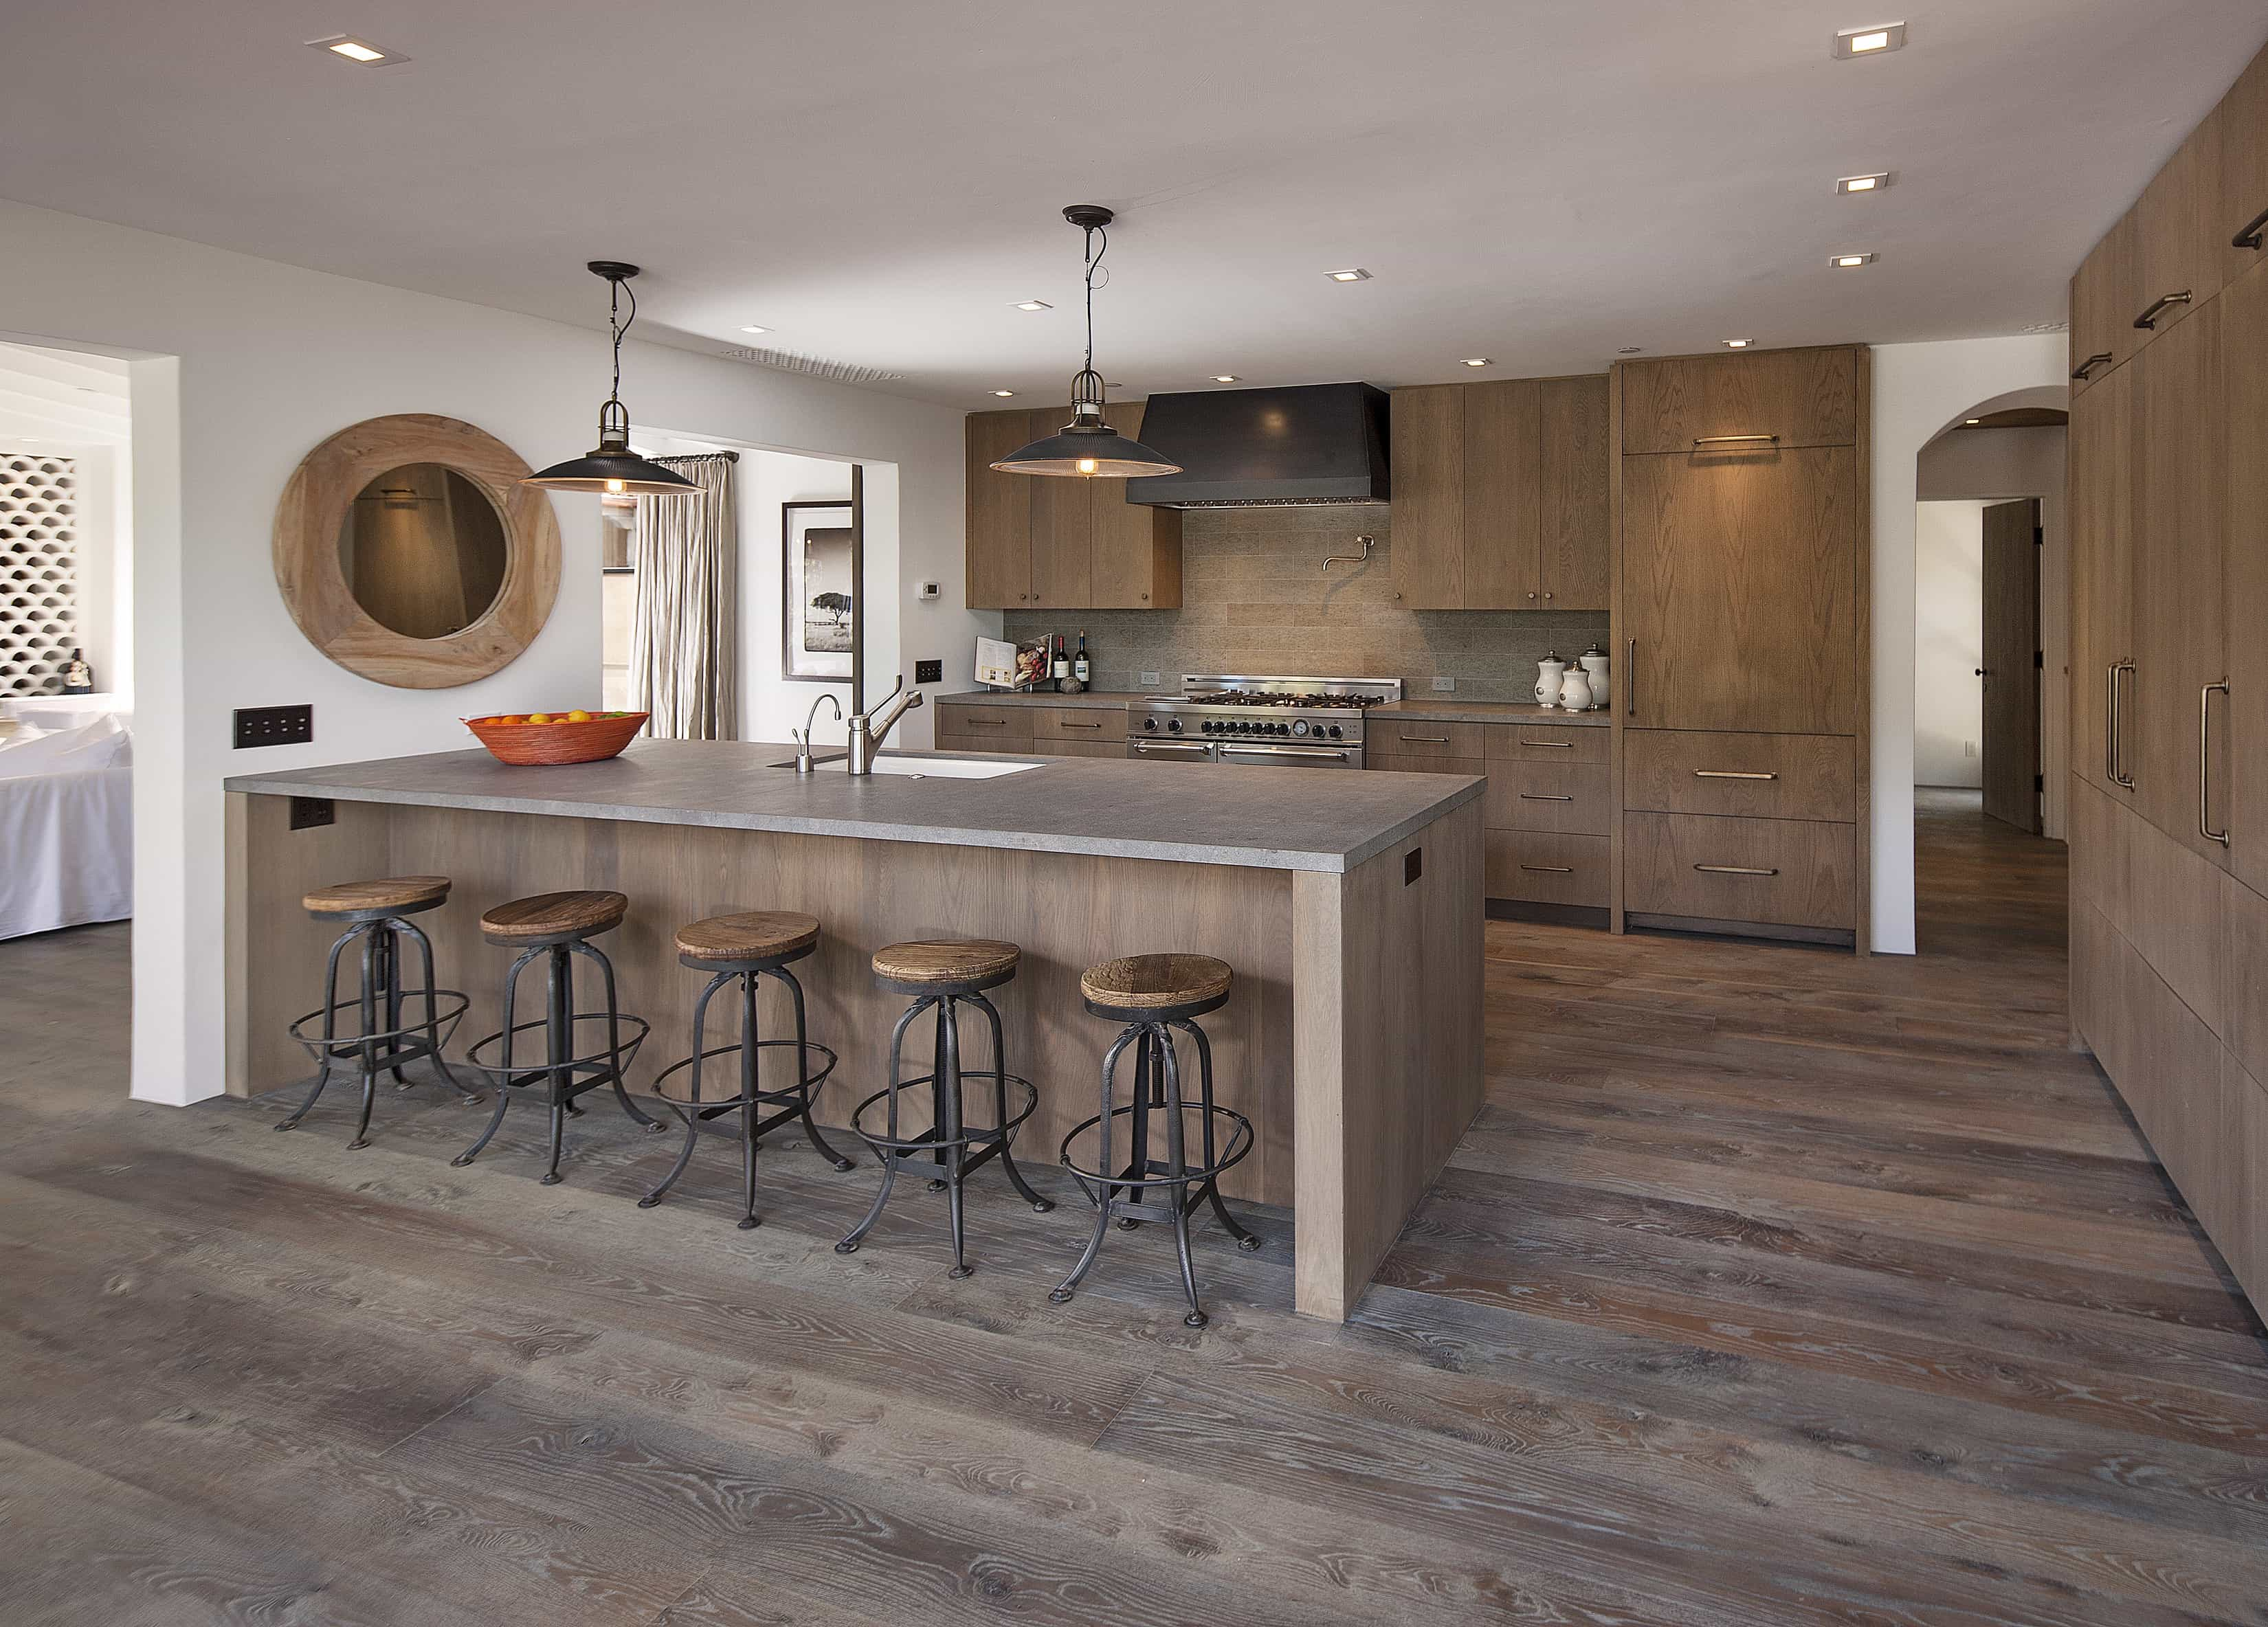 Rustic Wood Kitchen Bar Stools (Image 11 of 15)